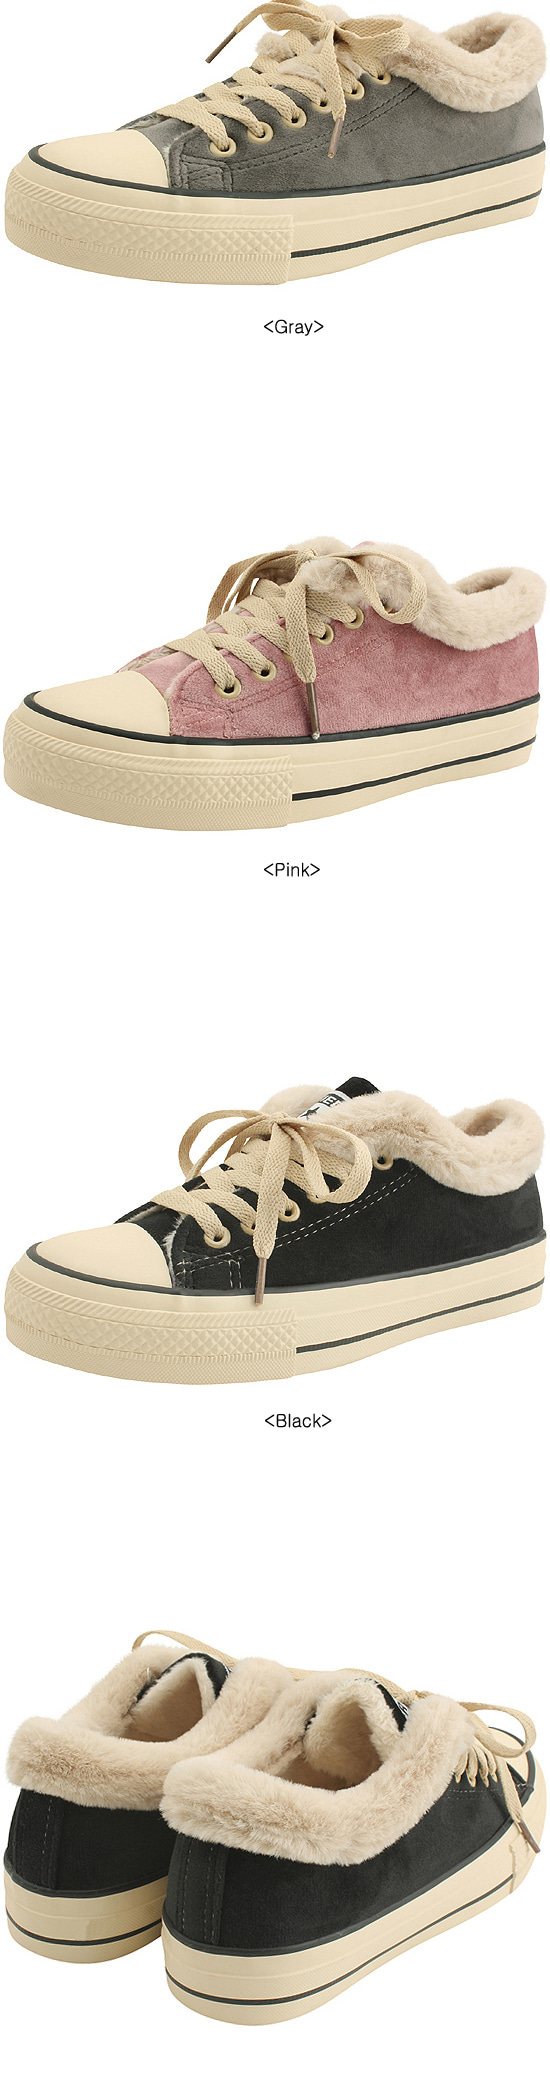 Canvas fur trim sneakers black